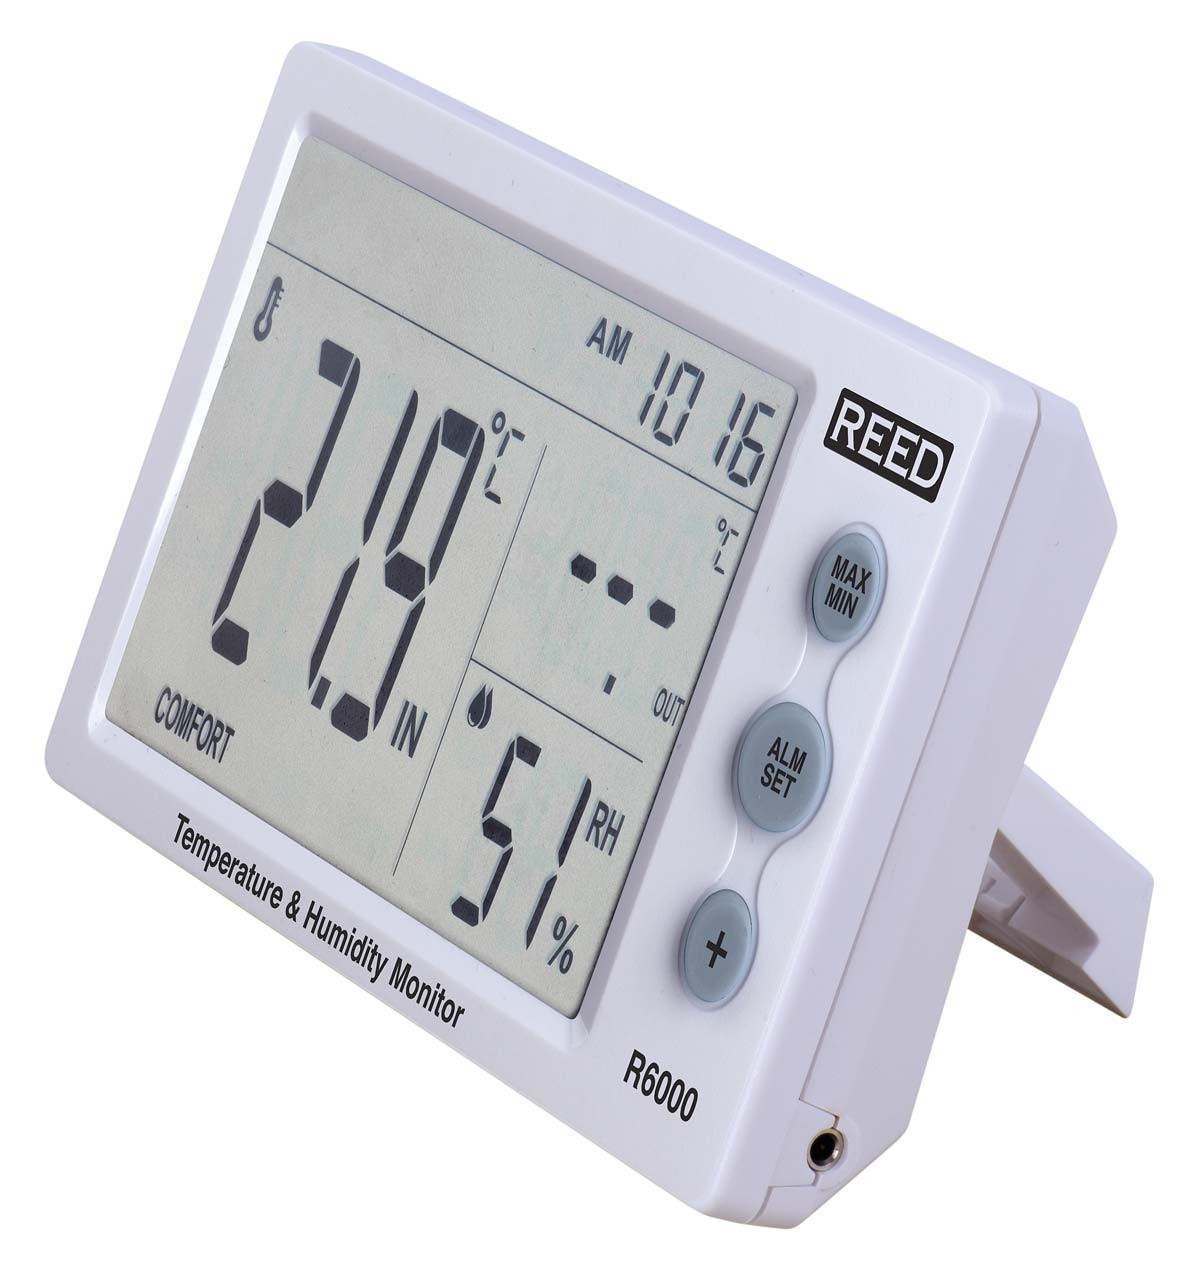 REED R6000 Temperature and Humidity Meter-REED R6000 4